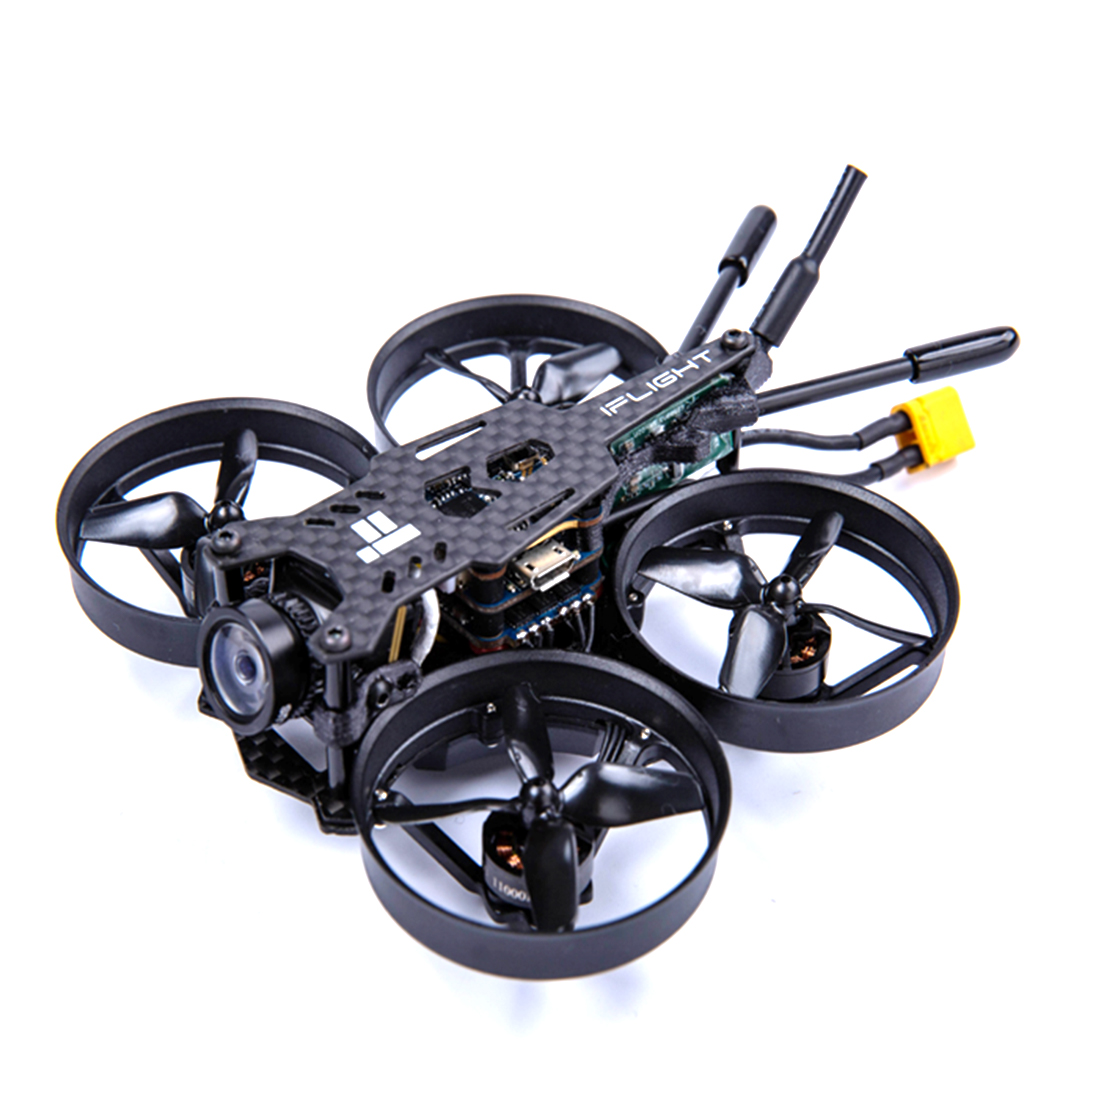 IFlight CineBee 75HD 2-4 S Course Drone SucceX F4 Tour 12A 4in1 ESC VTX FPV 1080 P Tortue v2 pour 75mm Mini Bwhoop quadrirotor PNP